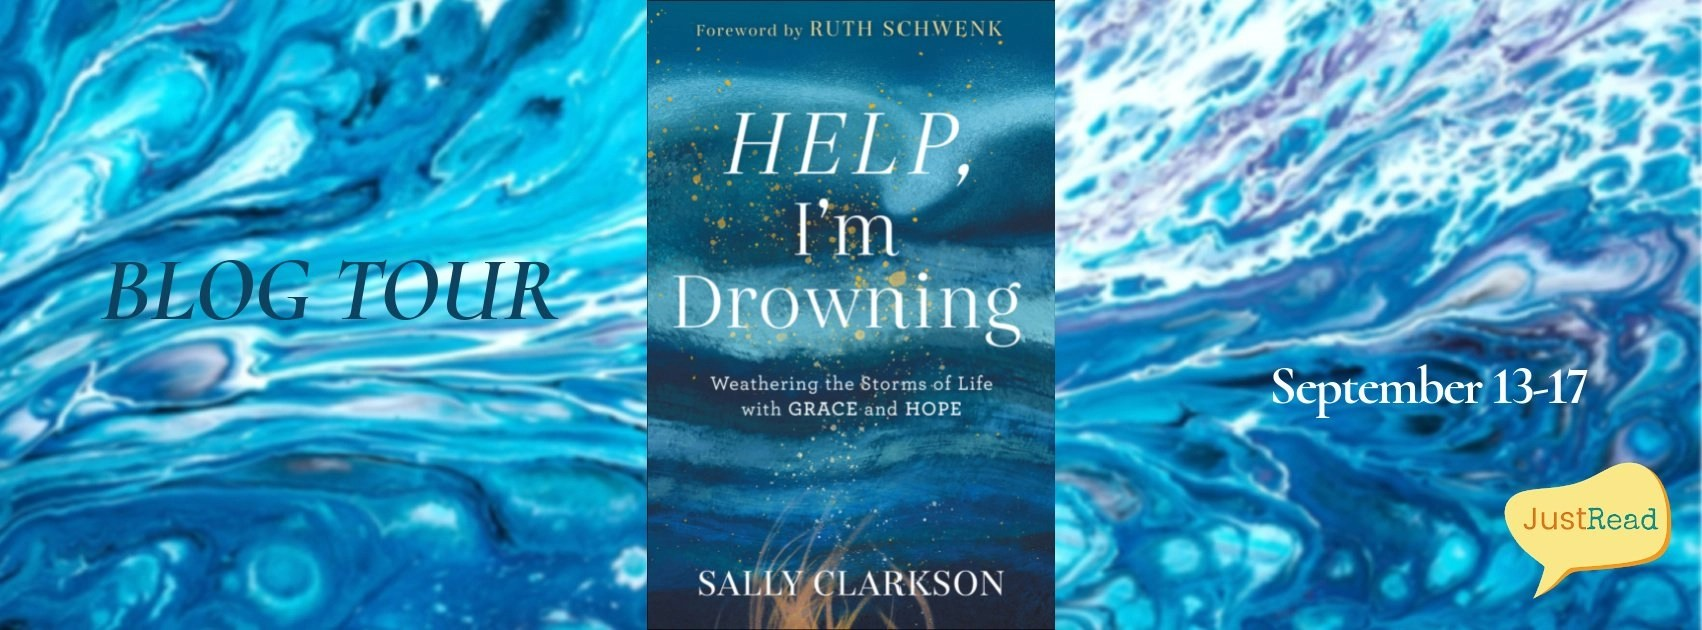 Welcome to the Help, I'm Drowning Blog Tour & Giveaway!